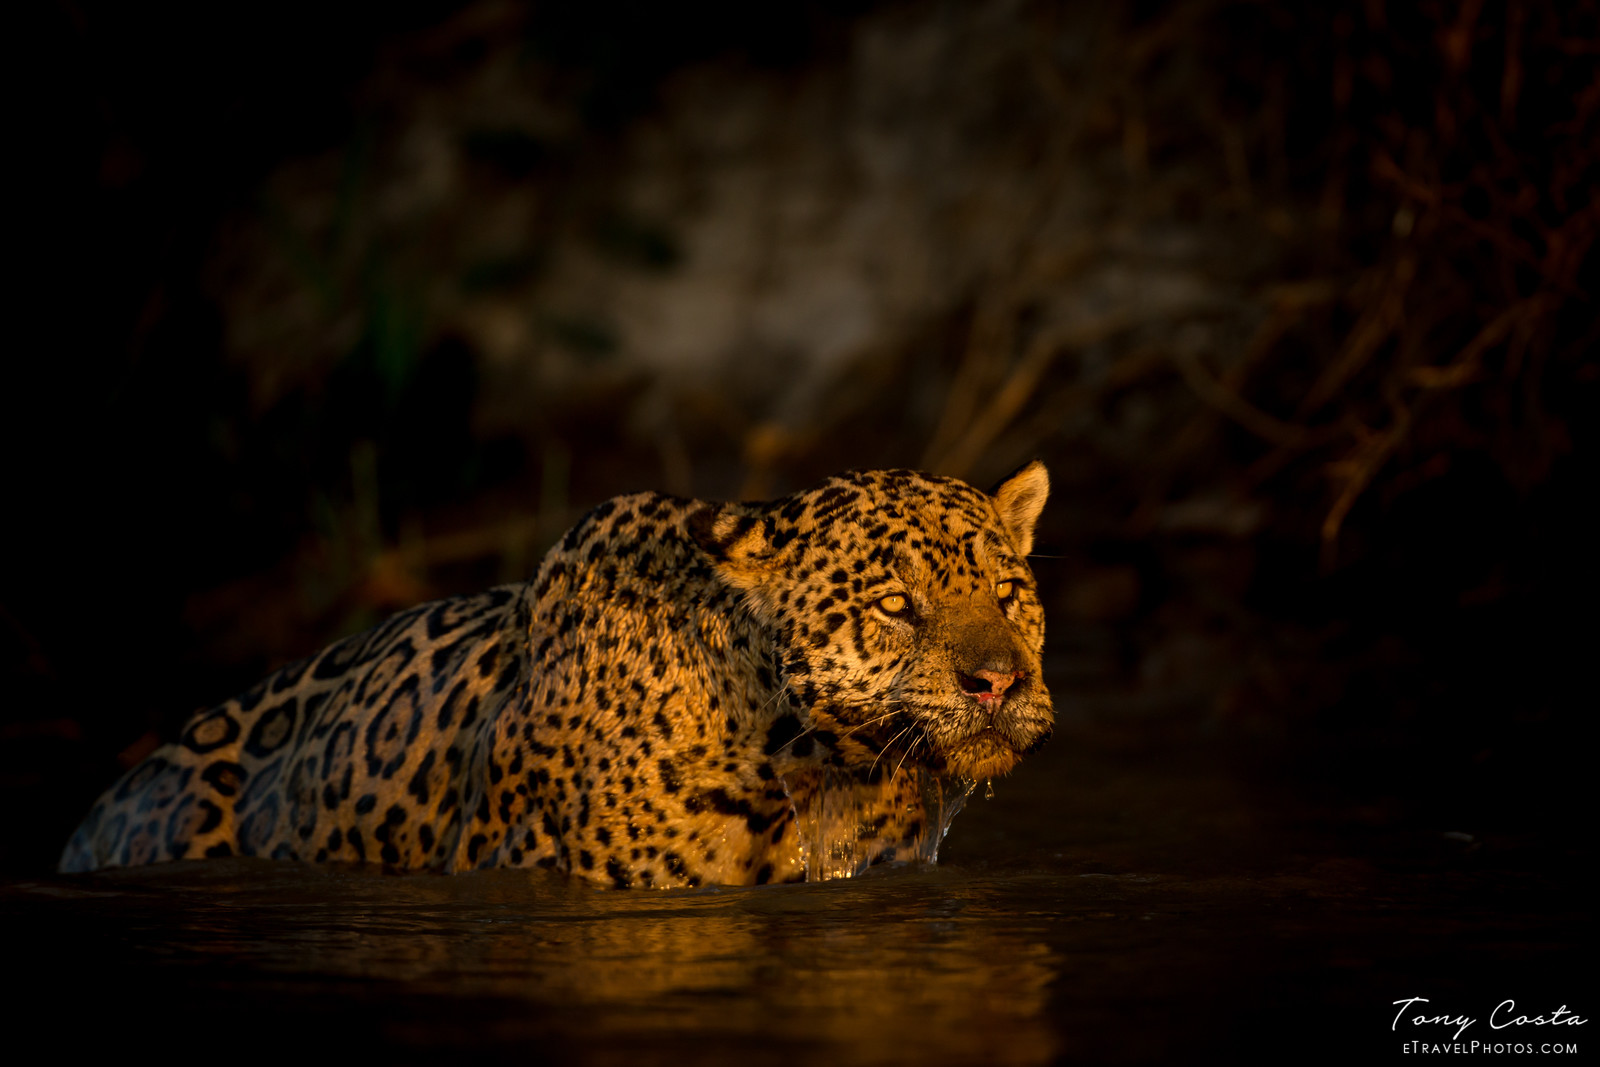 Jaguar in water